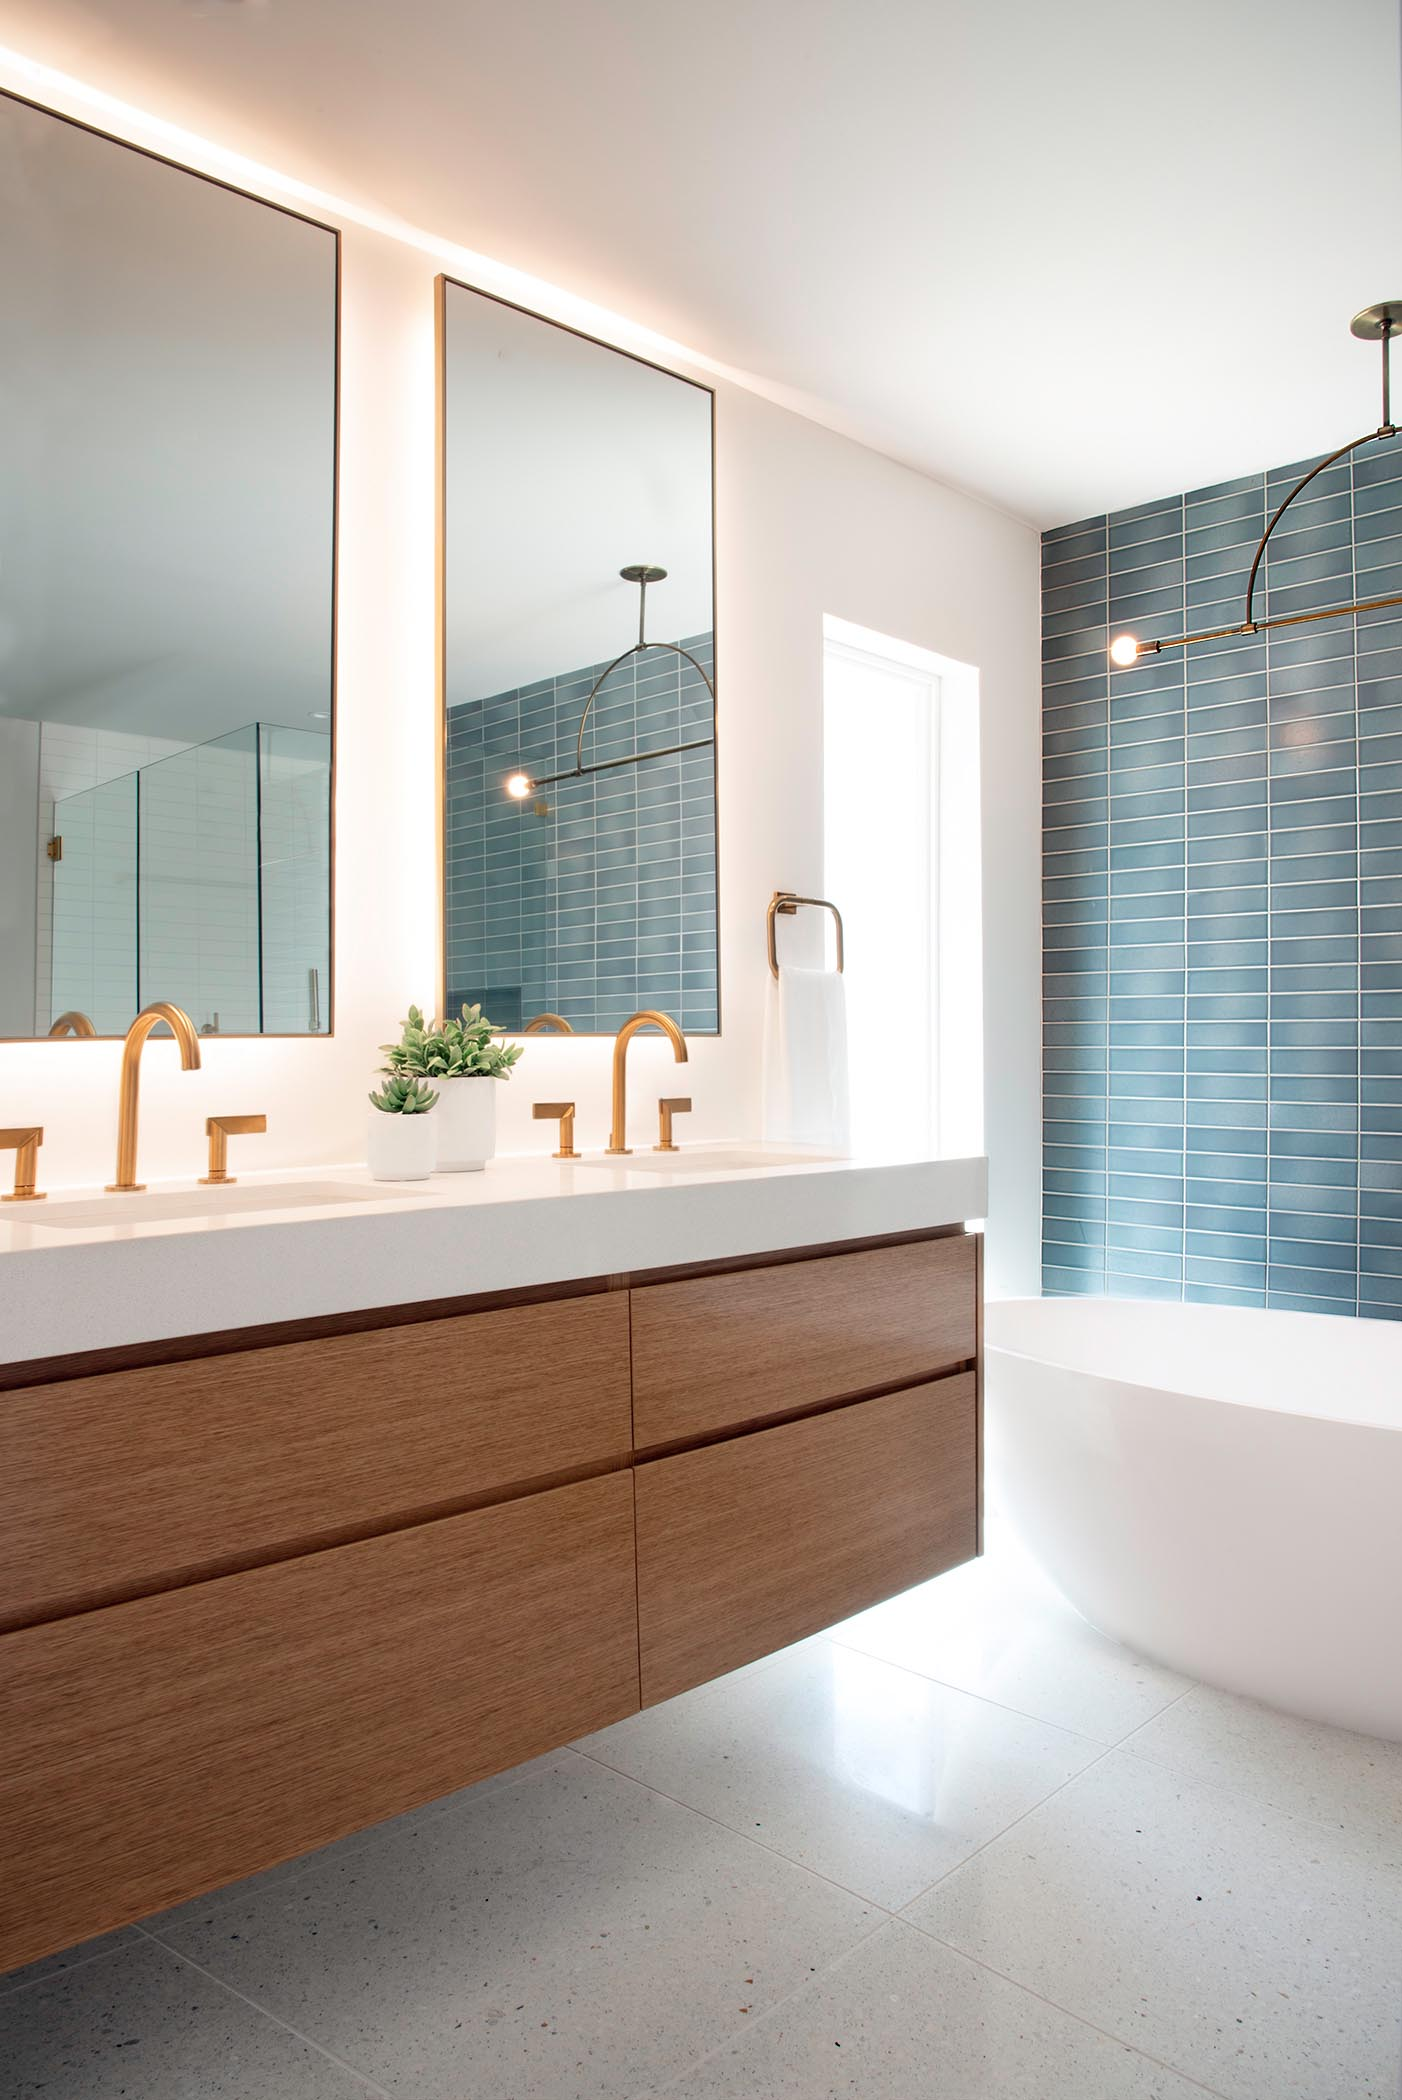 This modern bathroom includes a wall mounted wood vanity, blue and white rectangular wall tile, a minimalist light fixture, custom backlit mirrors, a freestanding white bathtub, and brass fixtures.